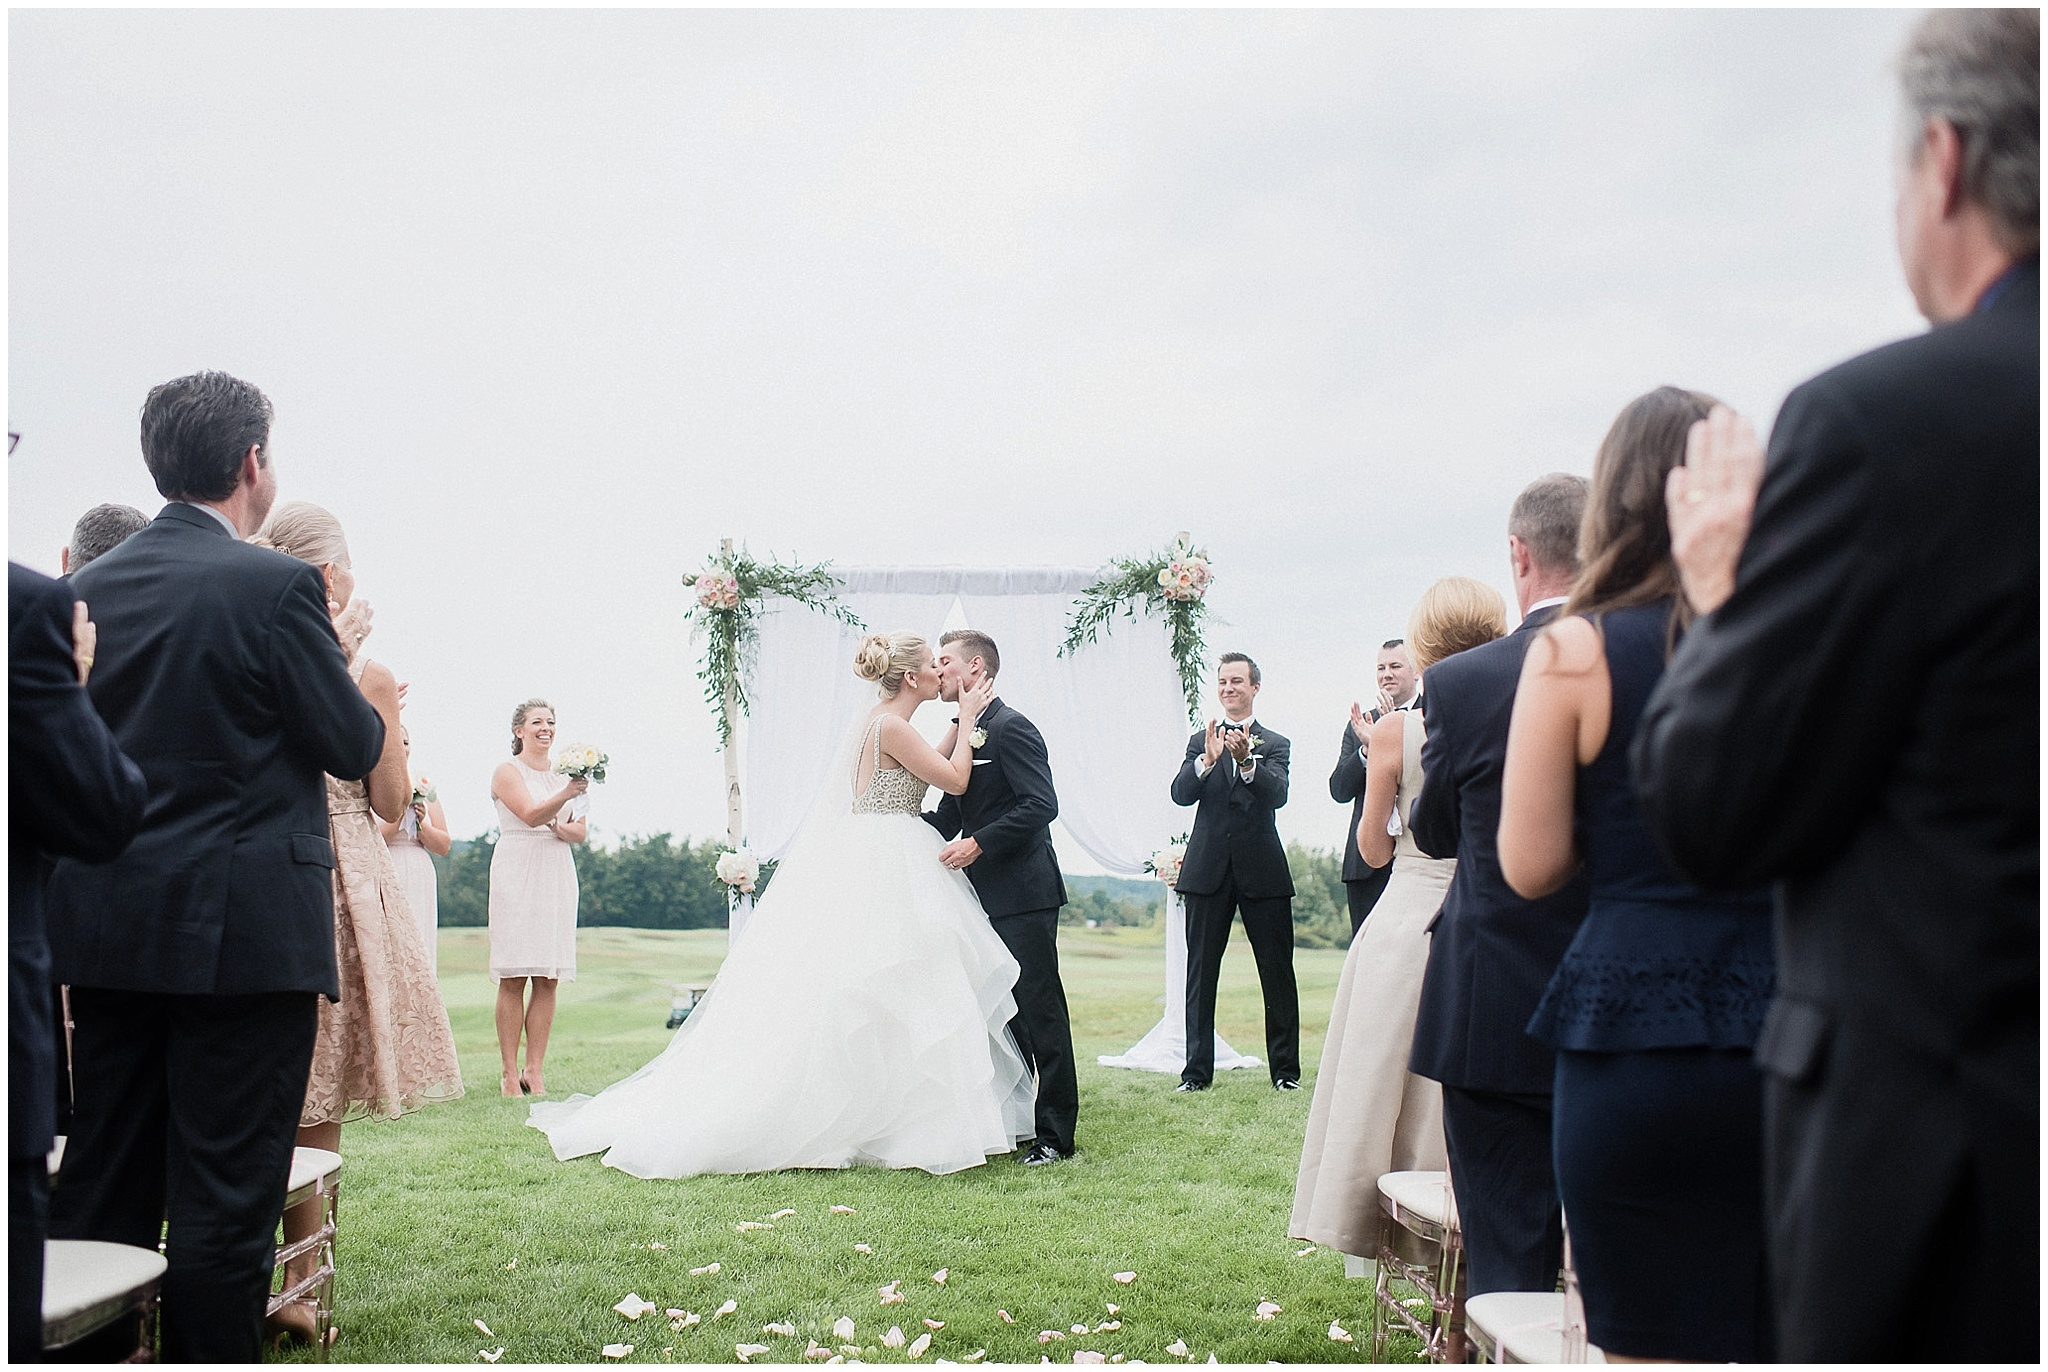 First kiss at this Glencairn wedding photographed by Jenn Kavanagh Photography